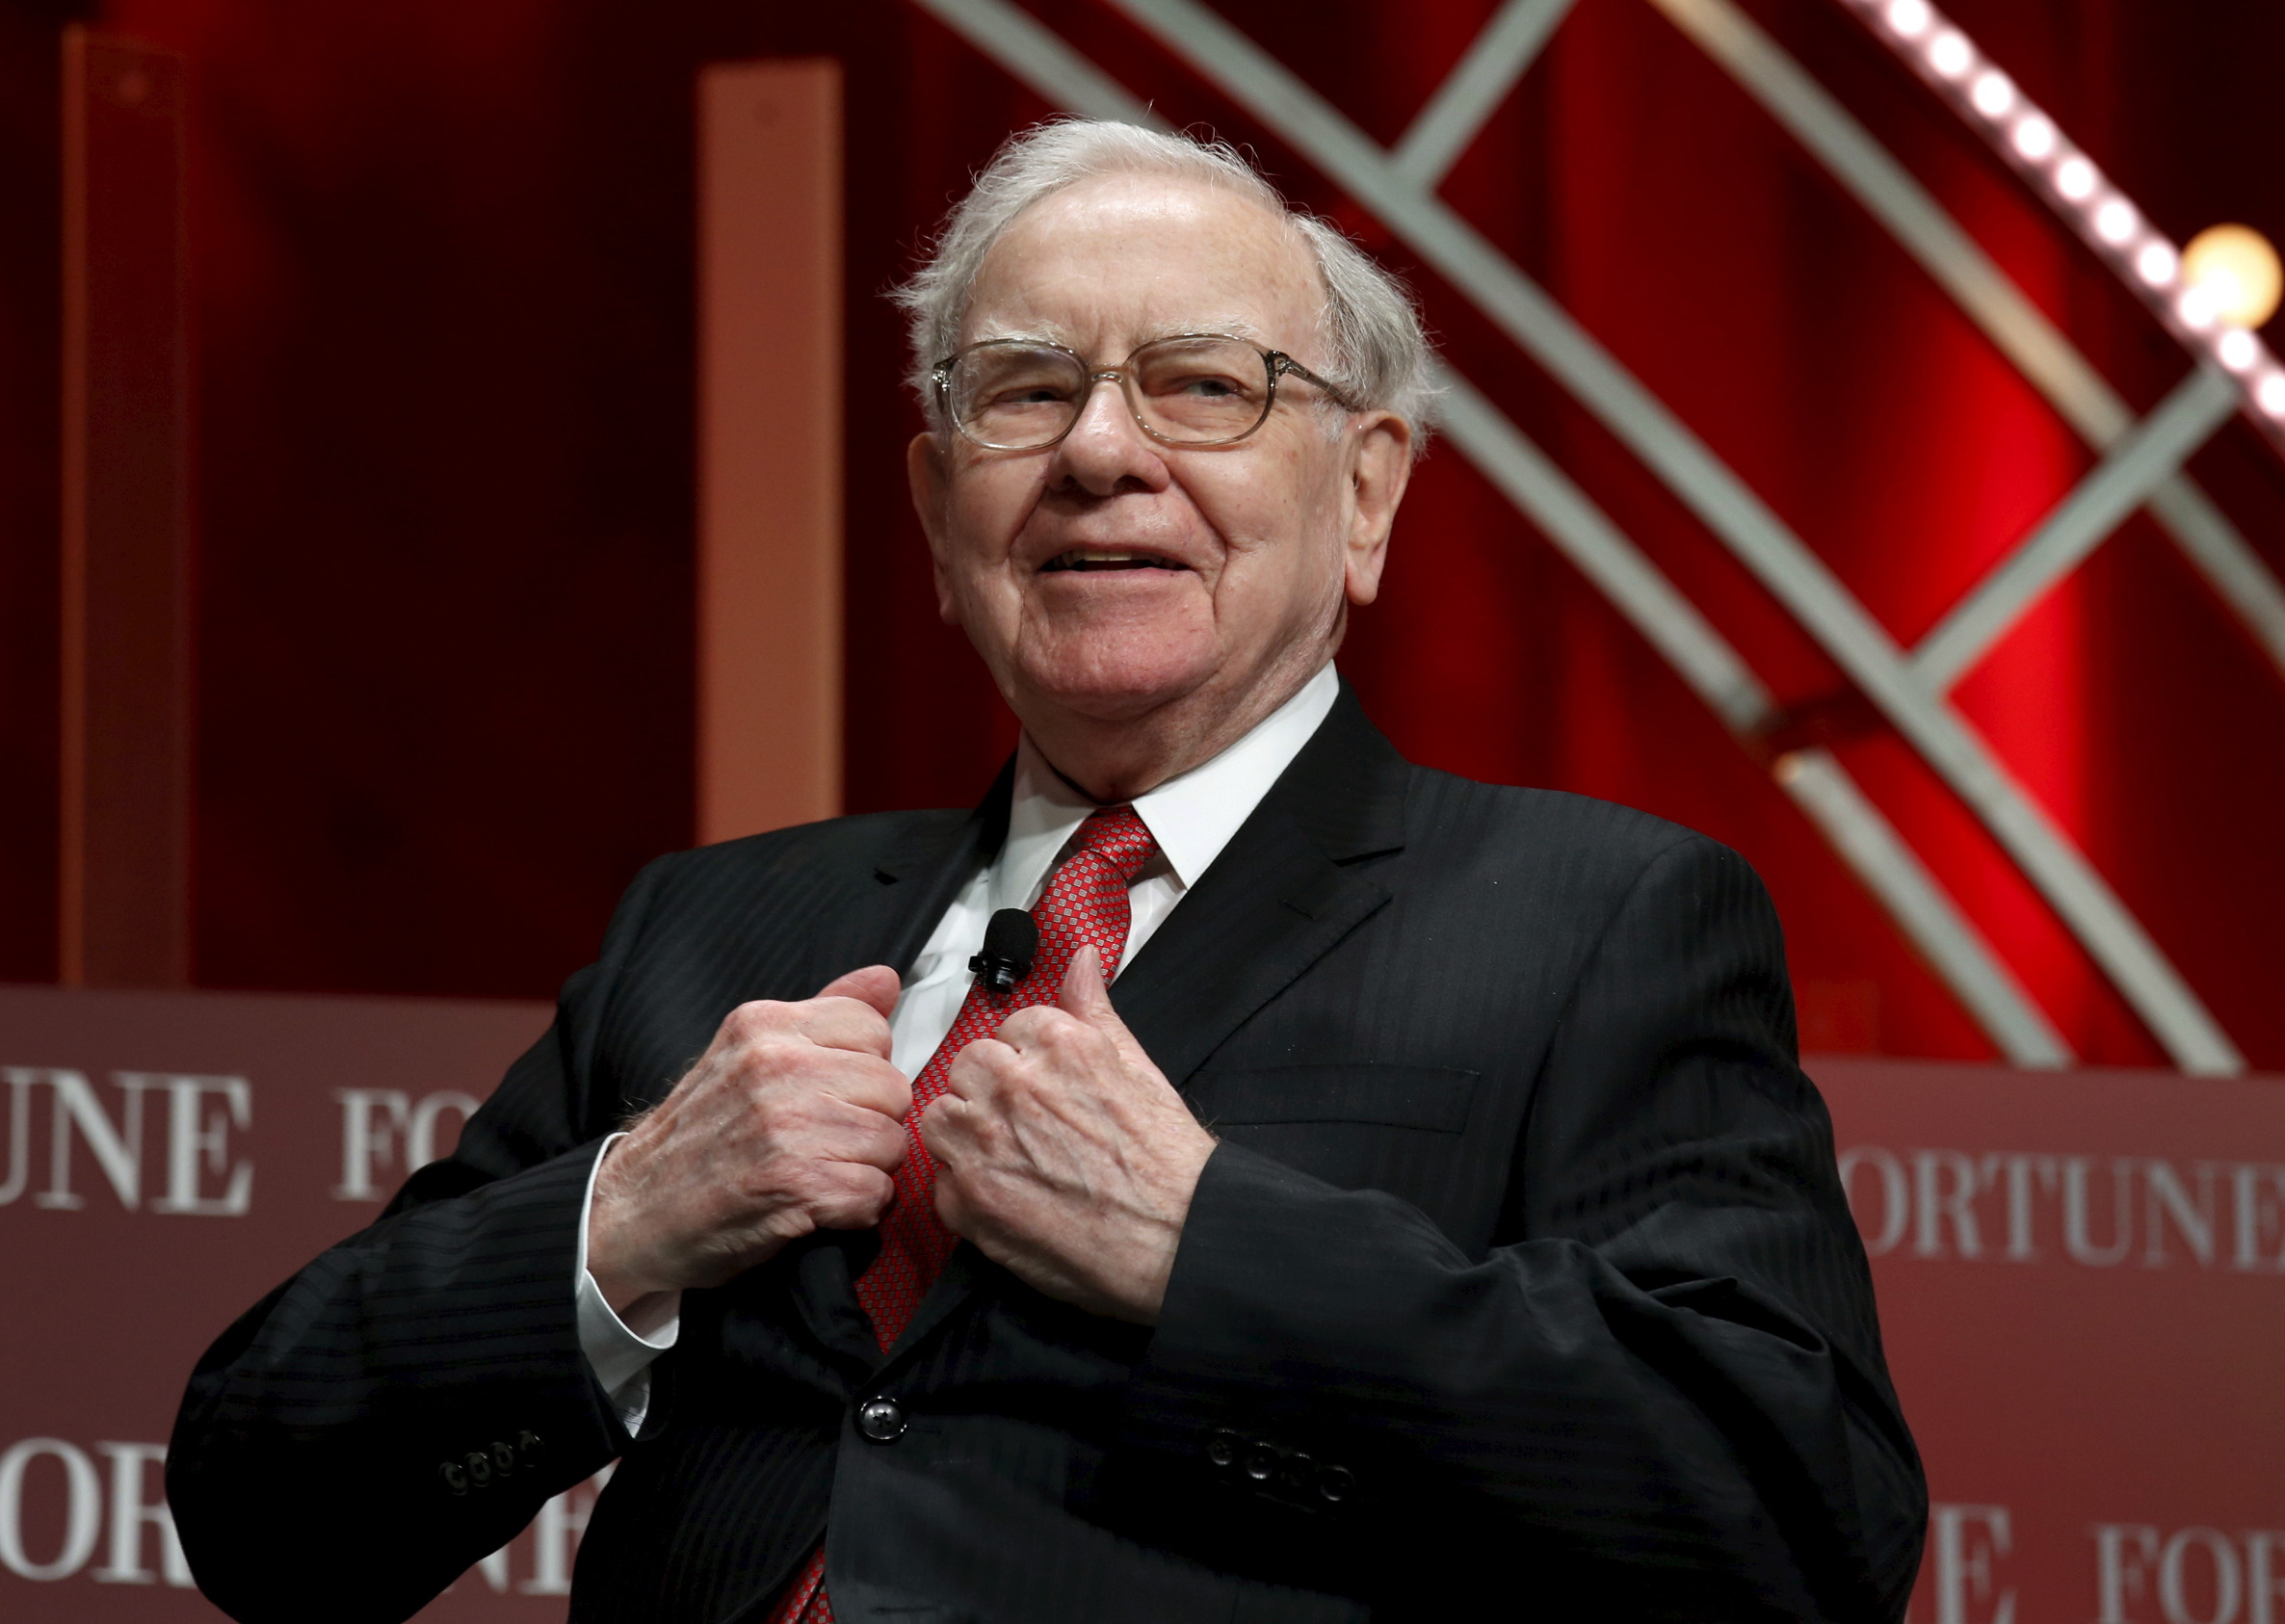 Warren Buffett, chairman and CEO of Berkshire Hathaway, takes his seat to speak at the Fortune's Most Powerful Women's Summit in Washington October 13, 2015.  REUTERS/Kevin Lamarque  - GF10000243307